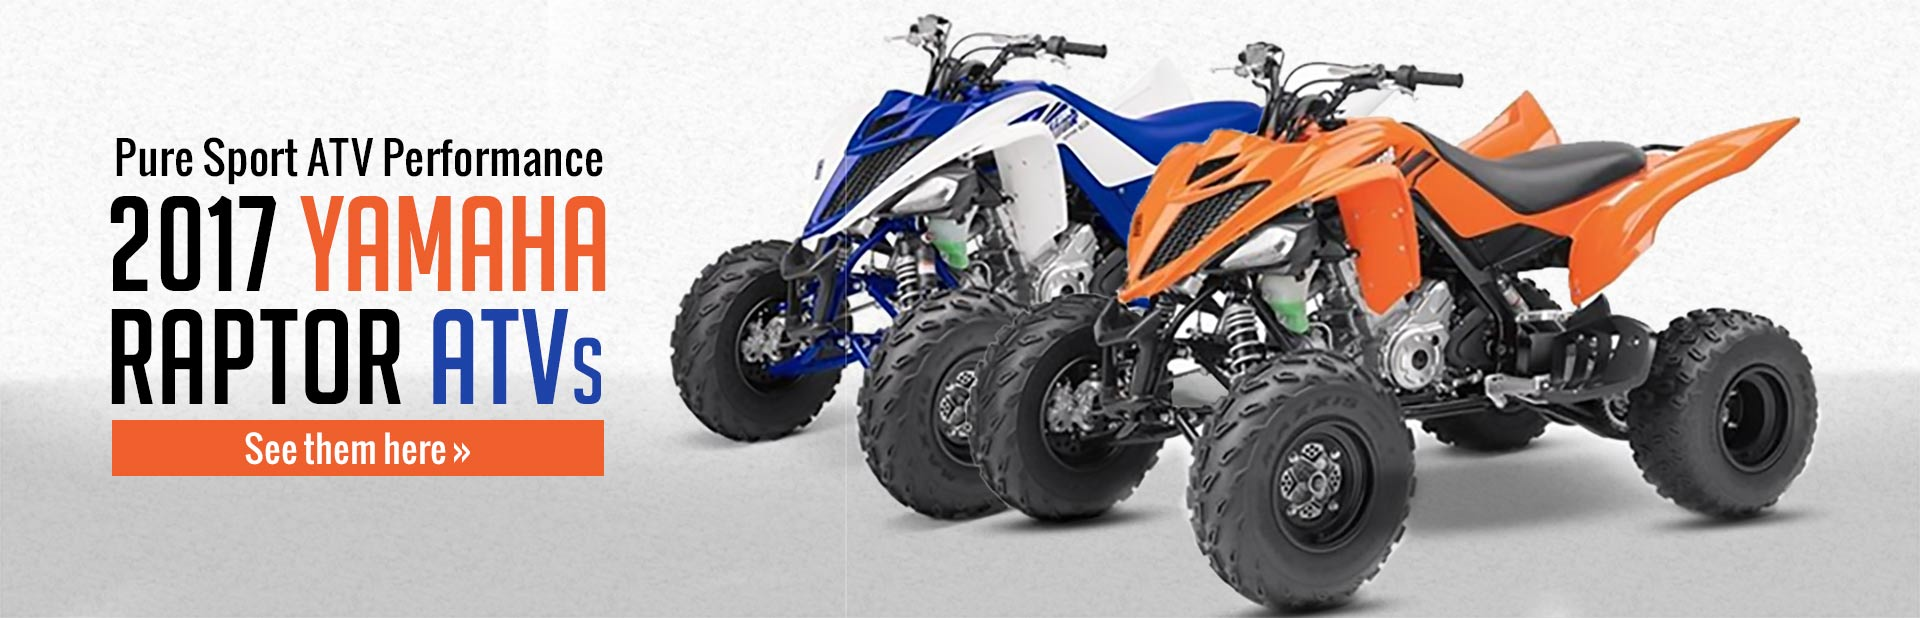 2017 Yamaha Raptor ATVs: Click here to view the models.